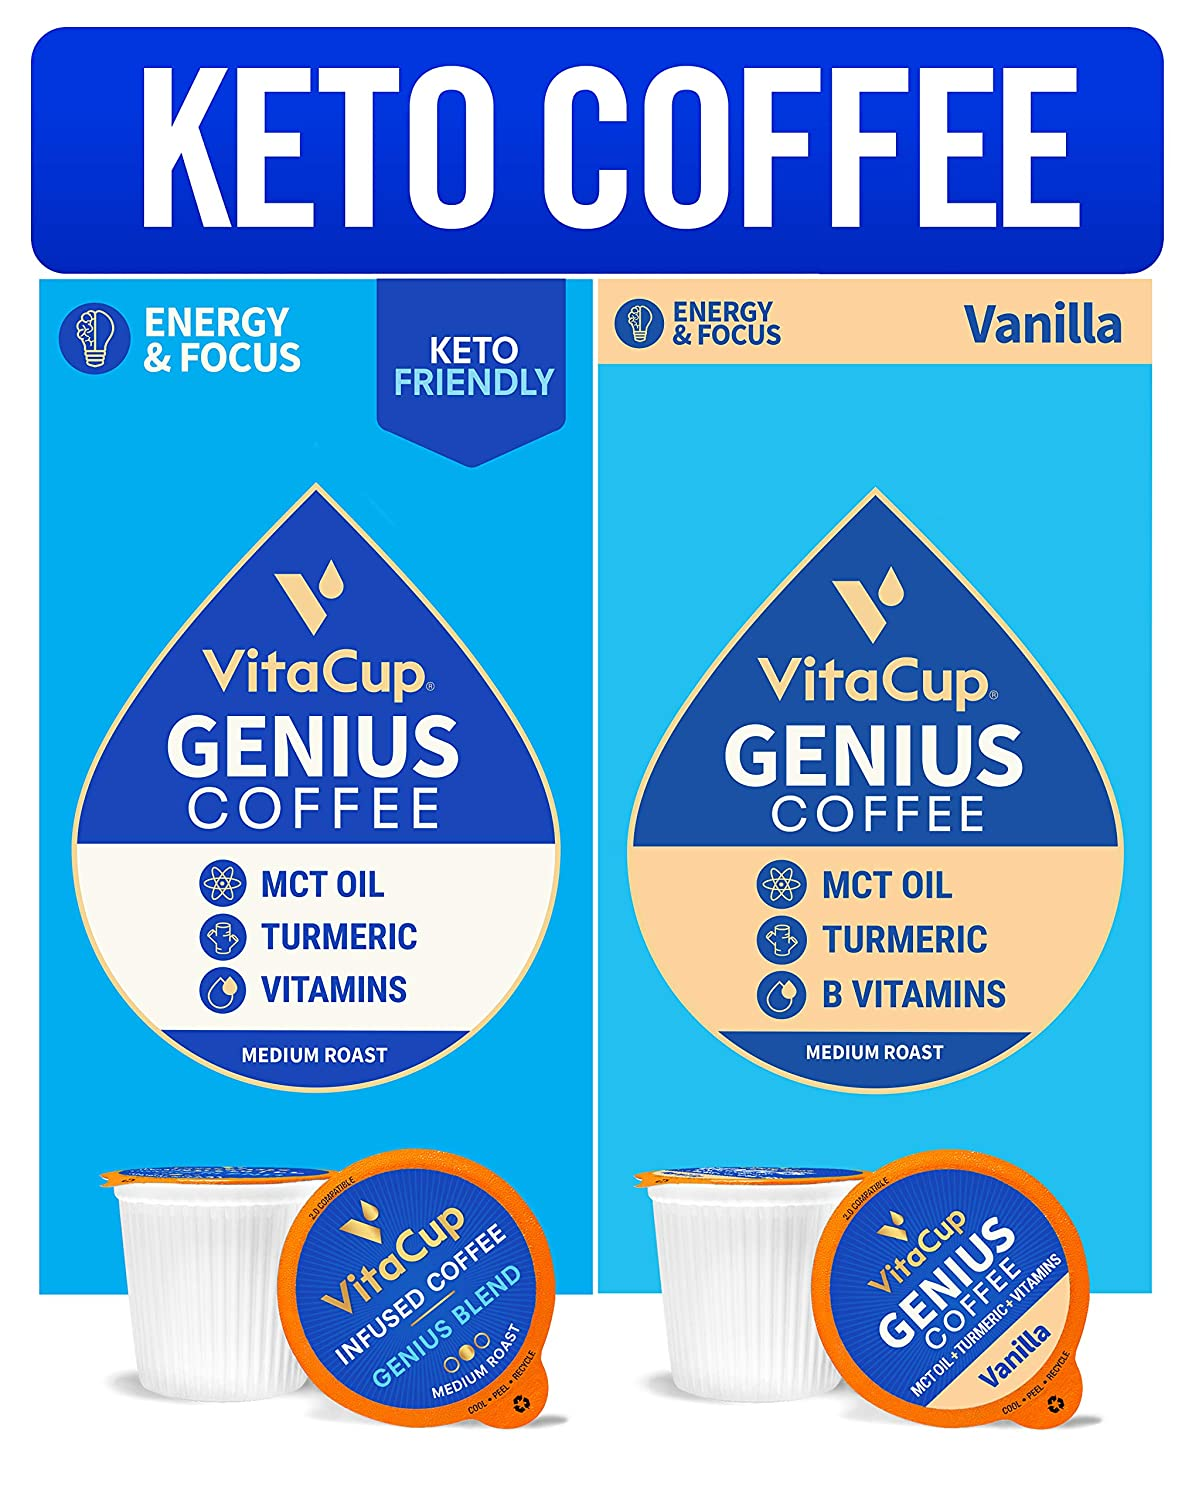 Vitacup Genius & Genius Vanilla Blend Coffee 32 Pod Bundle | Energy & Focus |Superfood & Vitamins Infused | Variety Pack of (2) 16 Count Single Serve Recyclable Pods Compatible with K-Cup Brewers